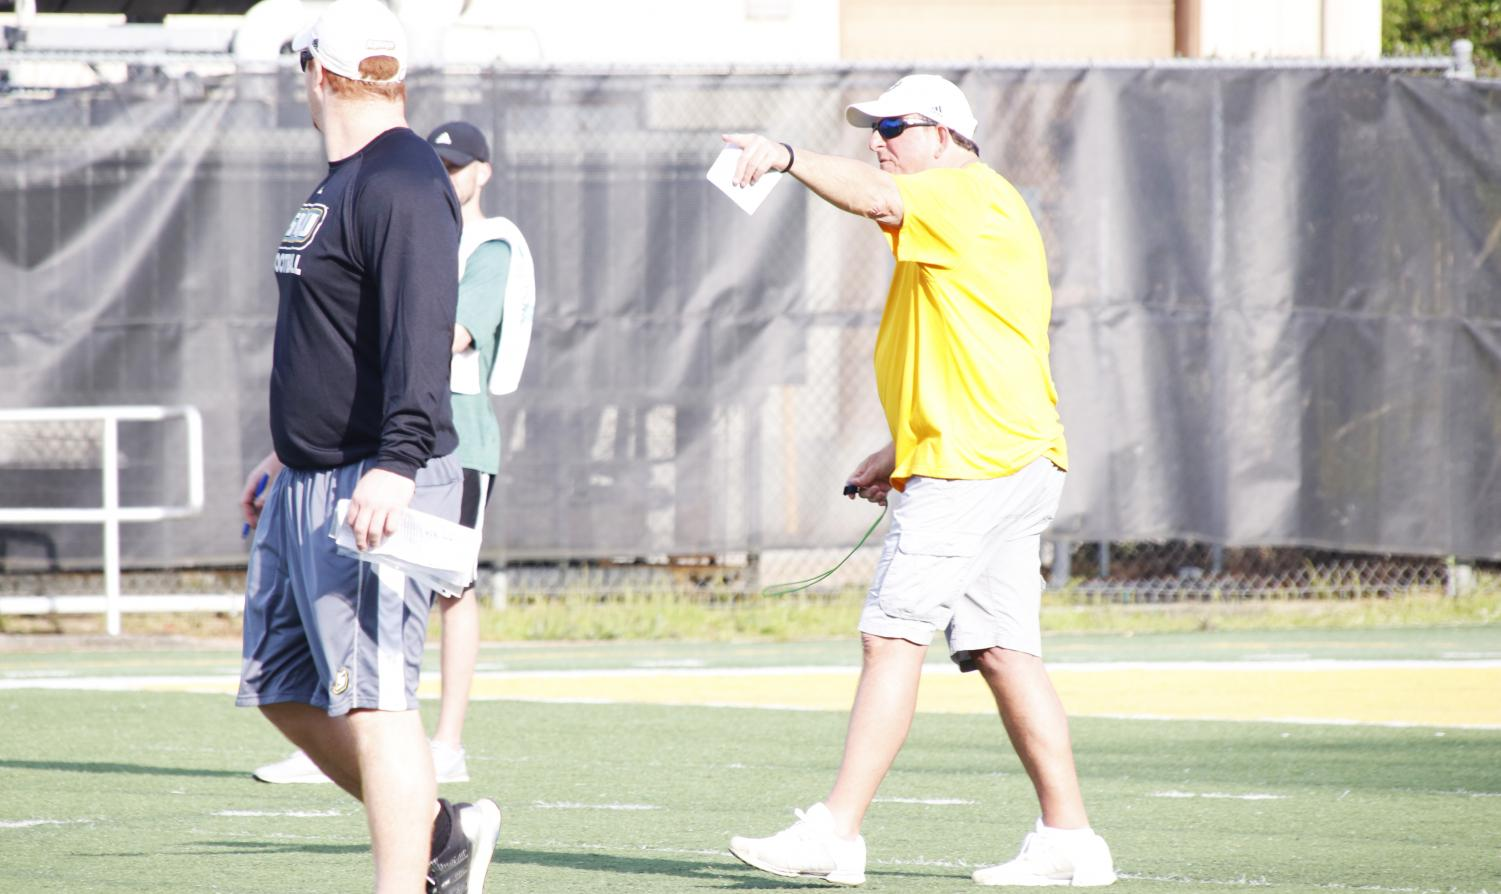 Frank Scelfo, head coach of football, teaches his players various plays at practice. The football team looks to build off of its 4-7 overall record from last season. Scelfo joined the Lions in 2018 following over 30 years of experience coaching the sport.